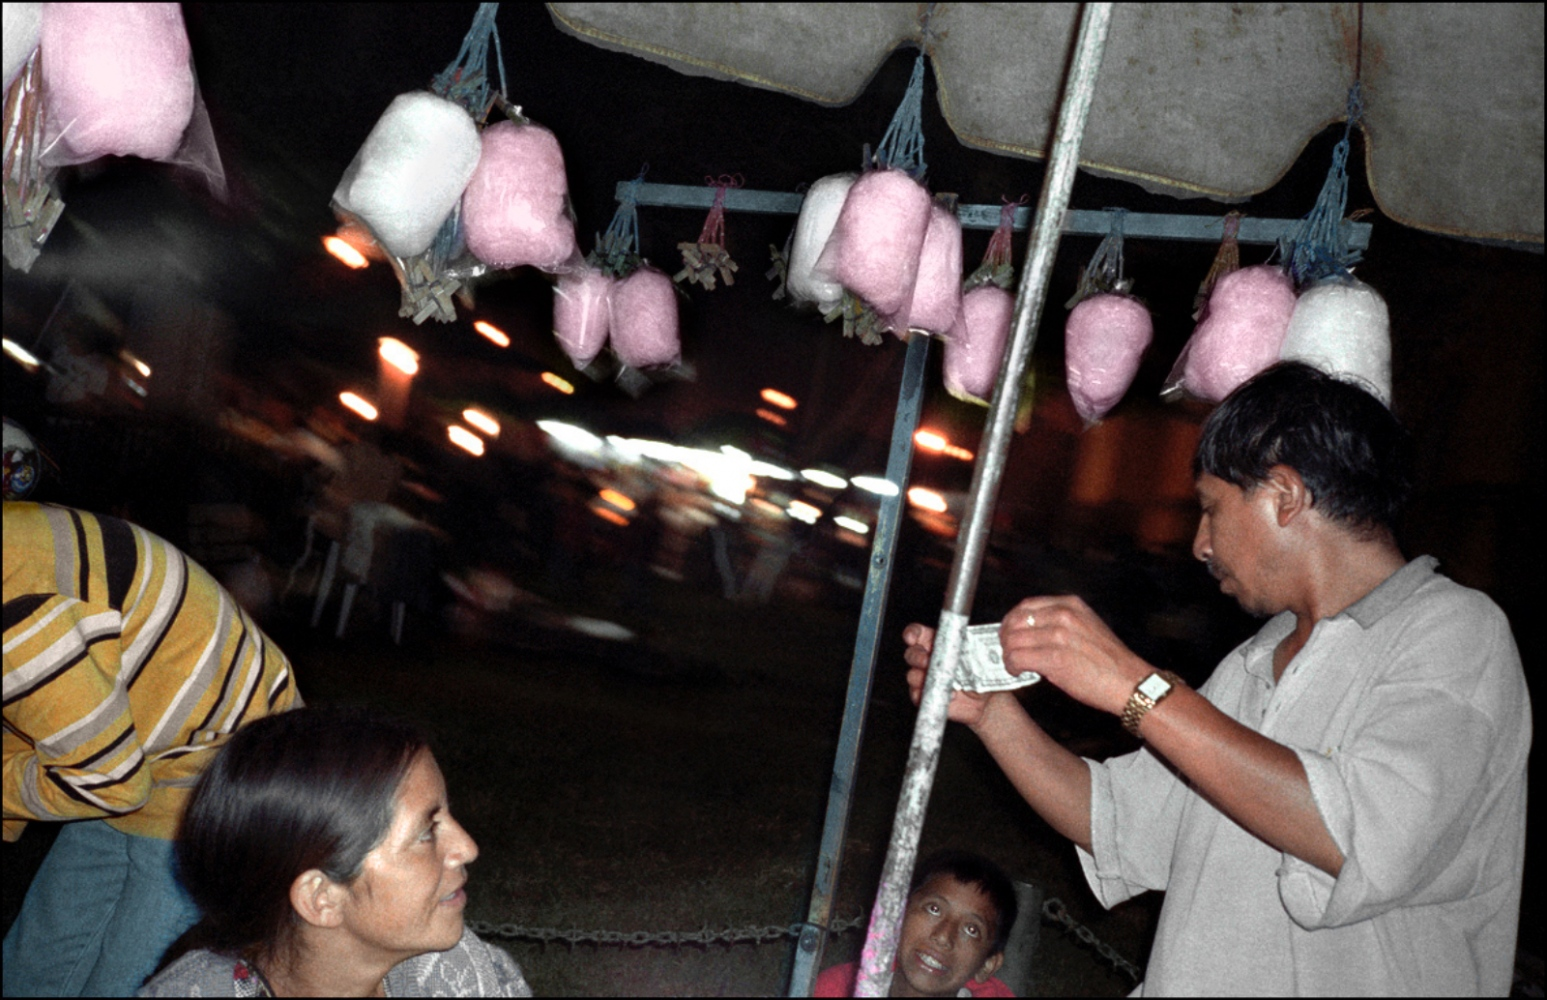 Cotton Candy Man, Antigua, Guatemala, April 2006